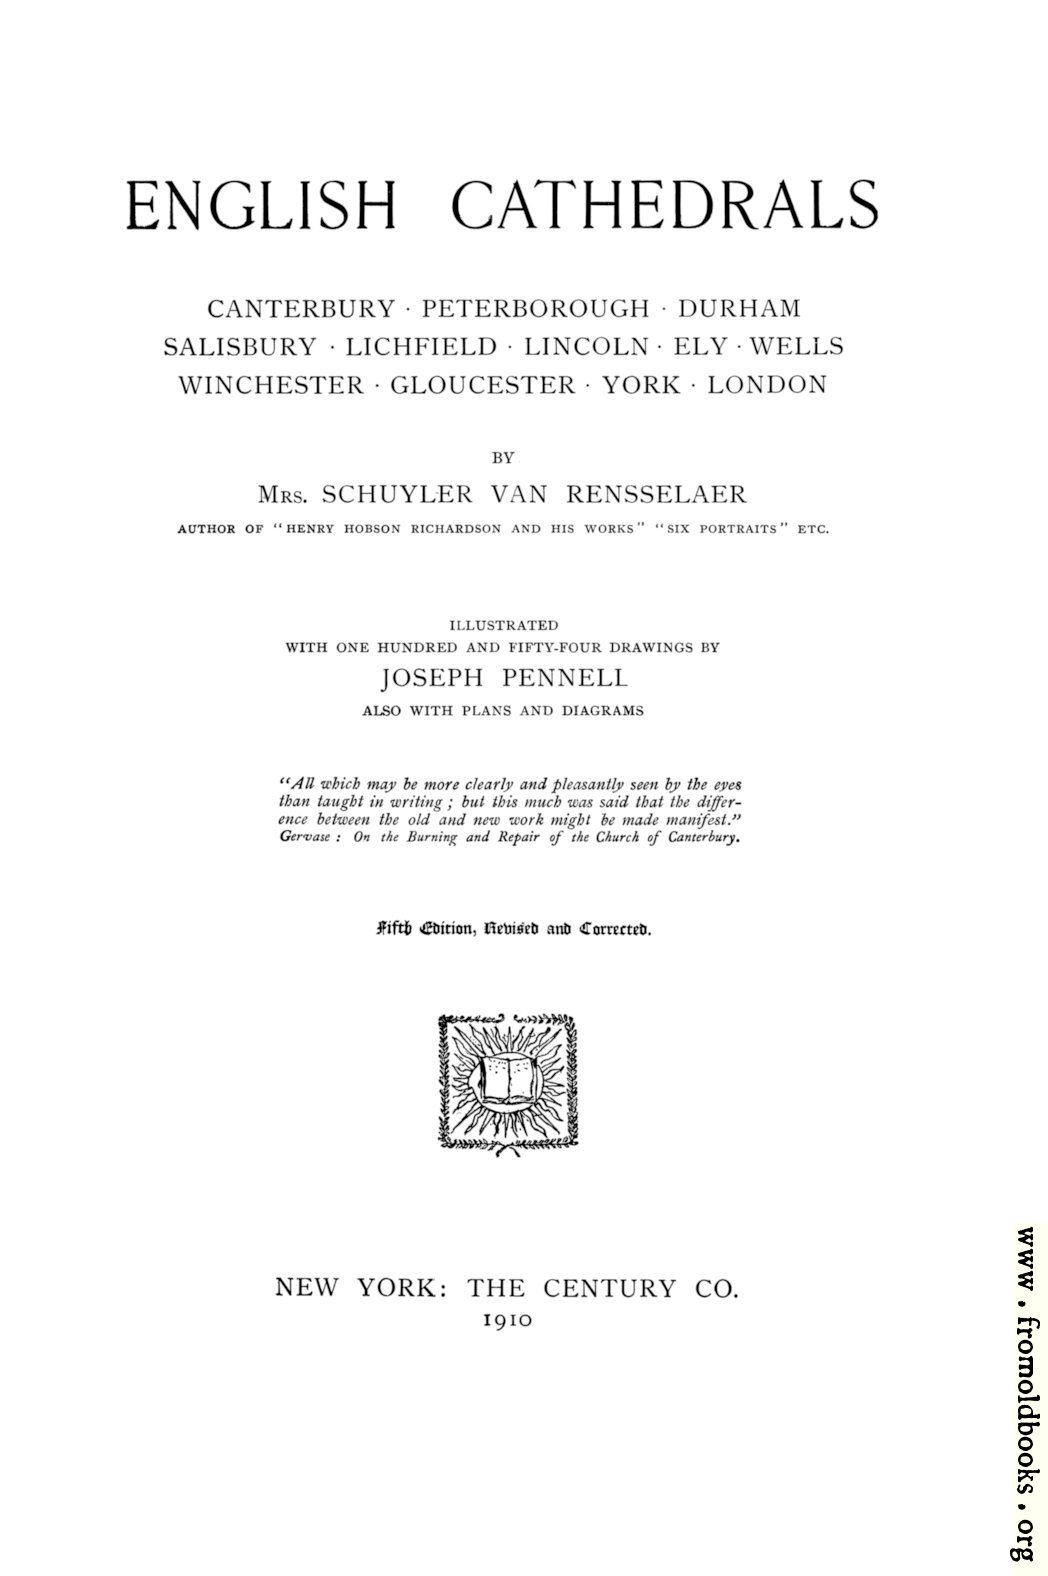 [Picture: Title page, English Cathedrals]